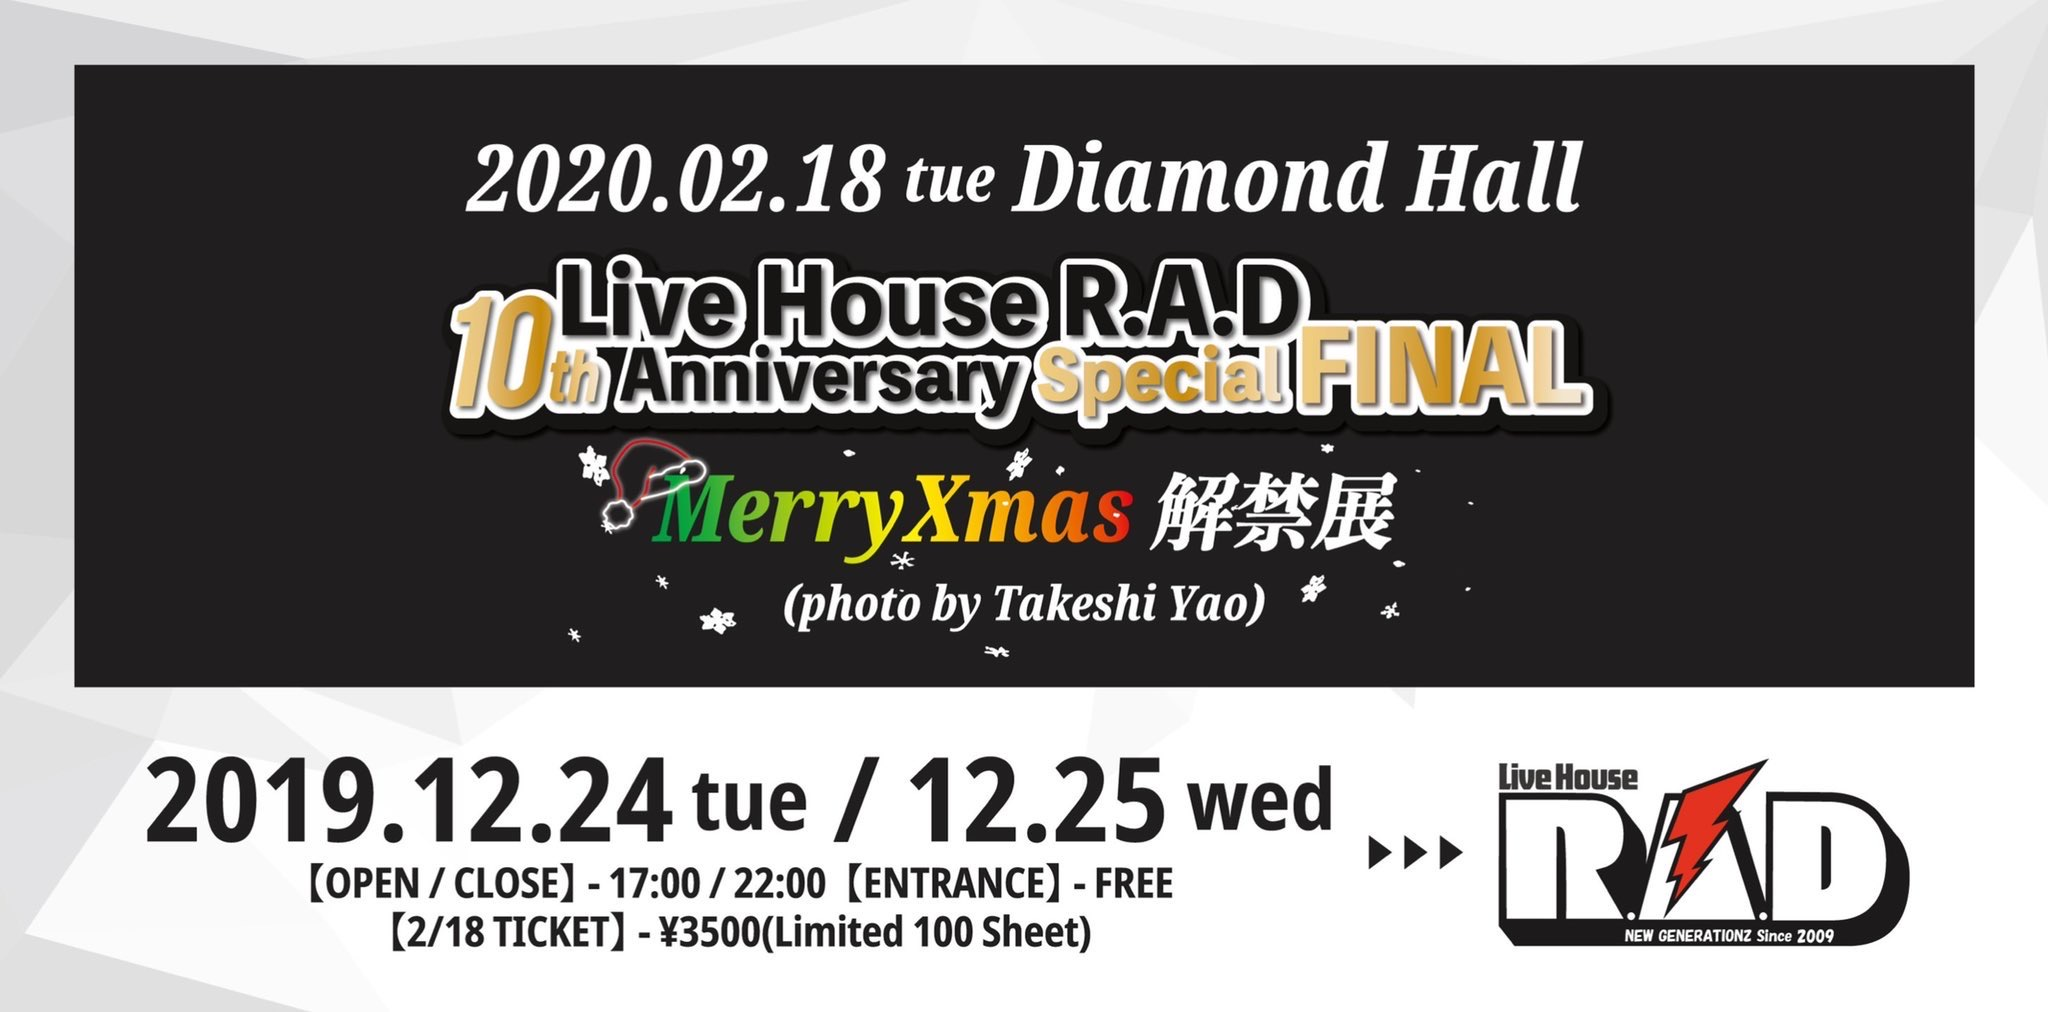 LiveHouse R.A.D 10th Anniversary Special FIANL Merry Xmas解禁展(photo by Takeshi Yao)